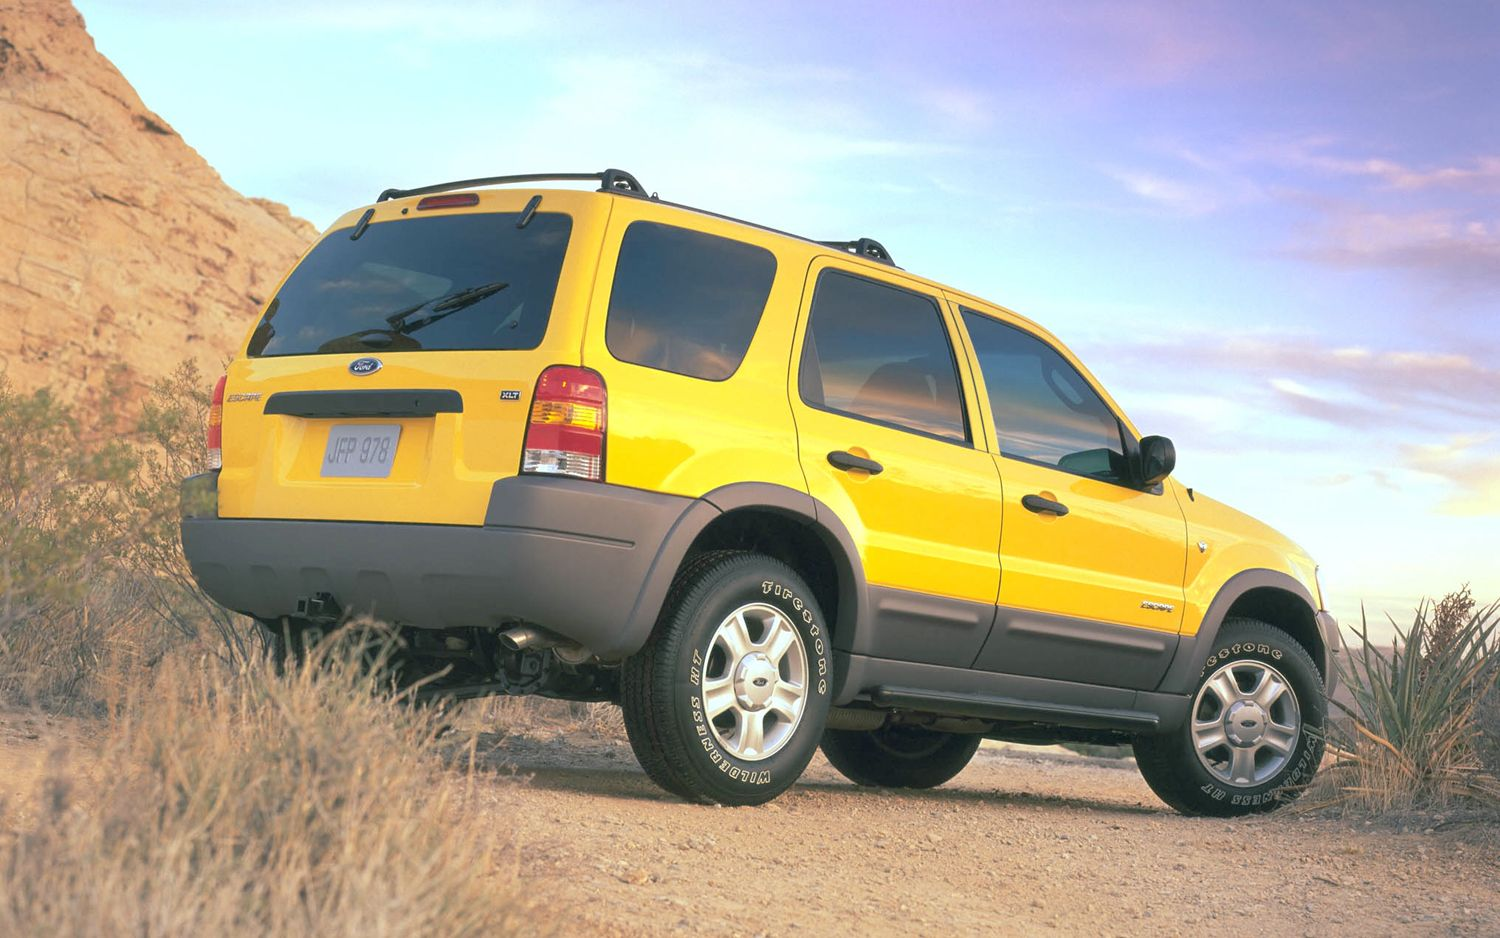 Ford Escape Review Research New Used Ford Escape Models Edmunds Ford Escape Ford Suv Ford